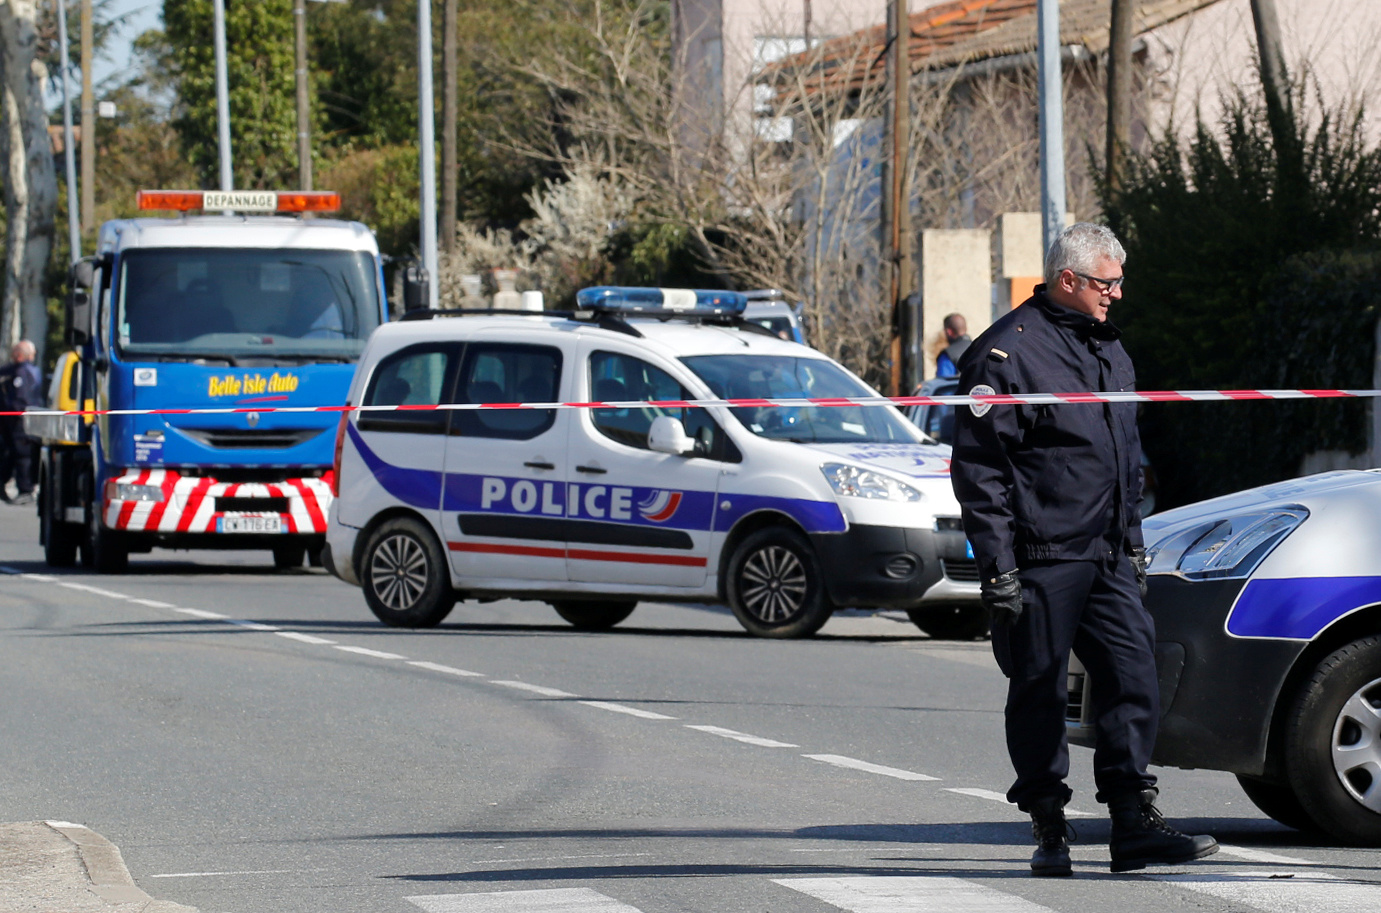 Students helped killer find teacher who was beheaded, says French prosecutor